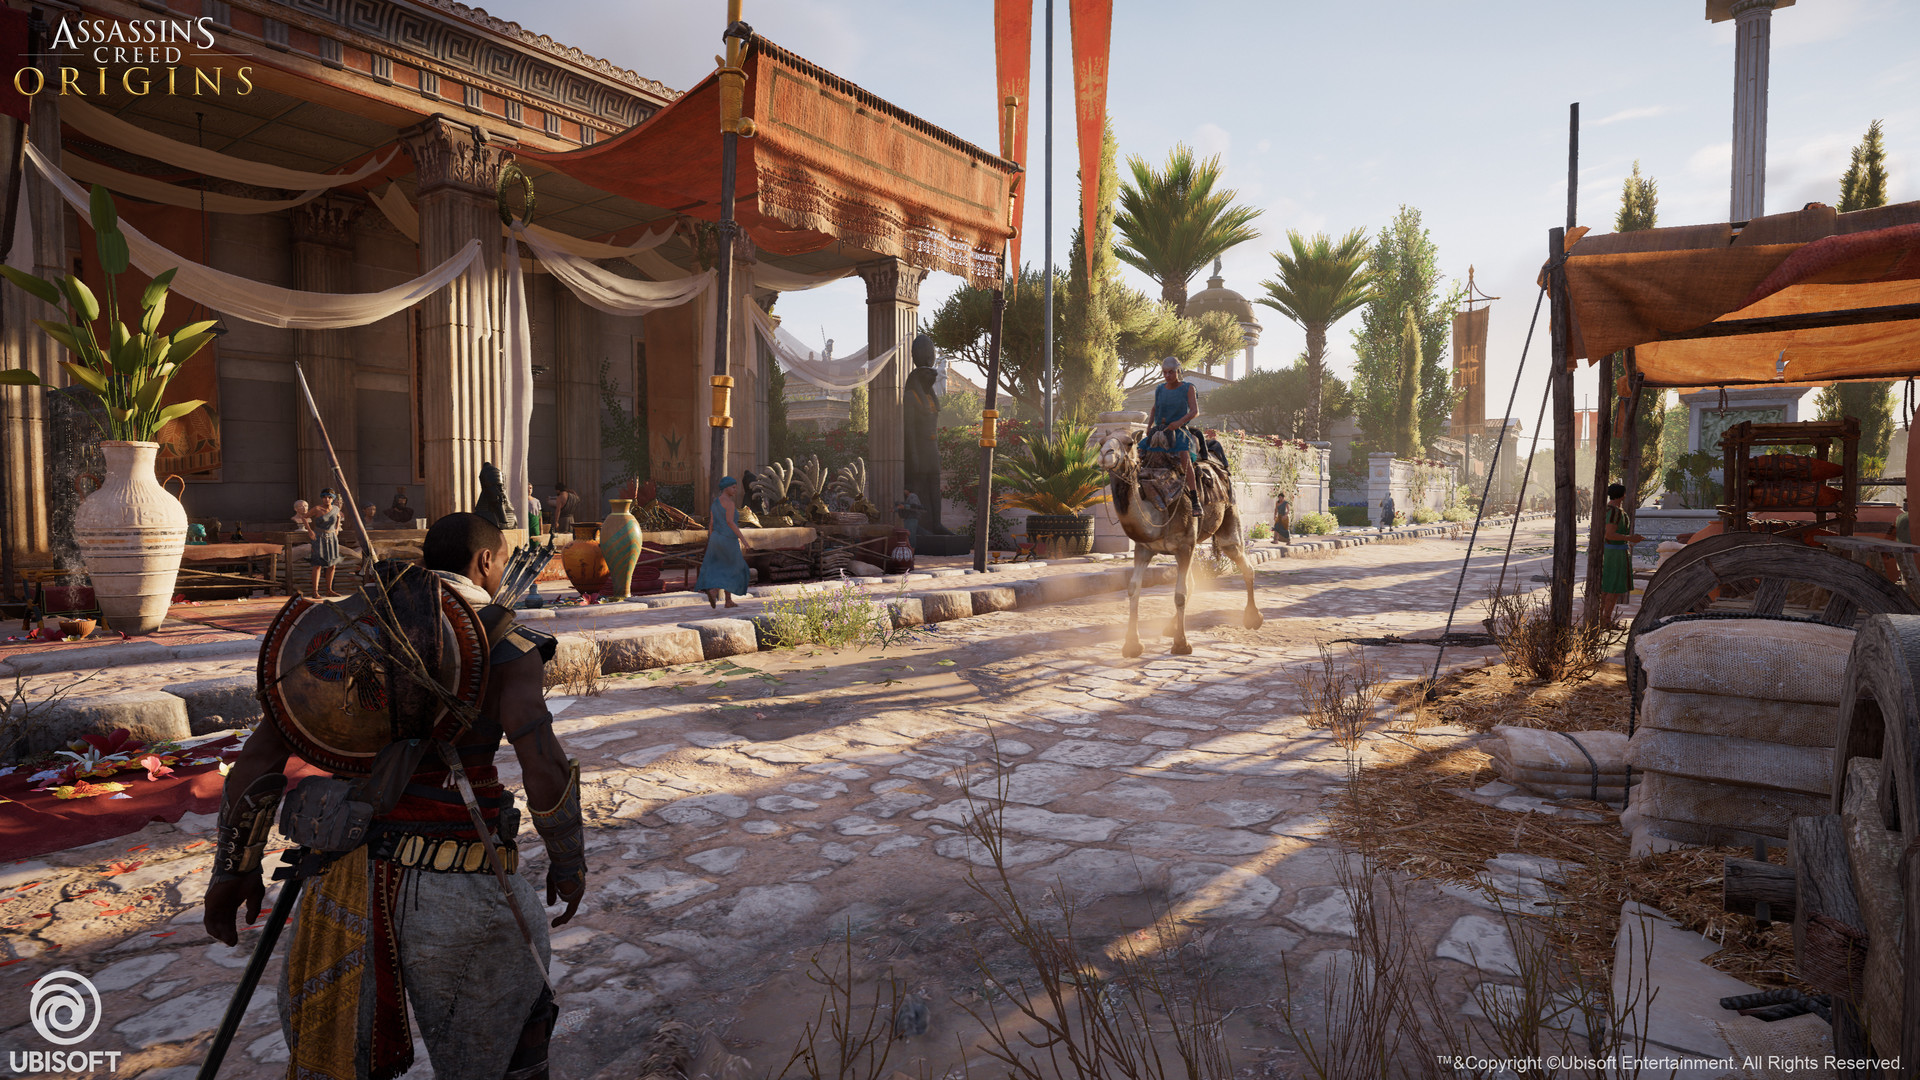 assassins creed origins discovery tour spielbarde - HD1920×1080